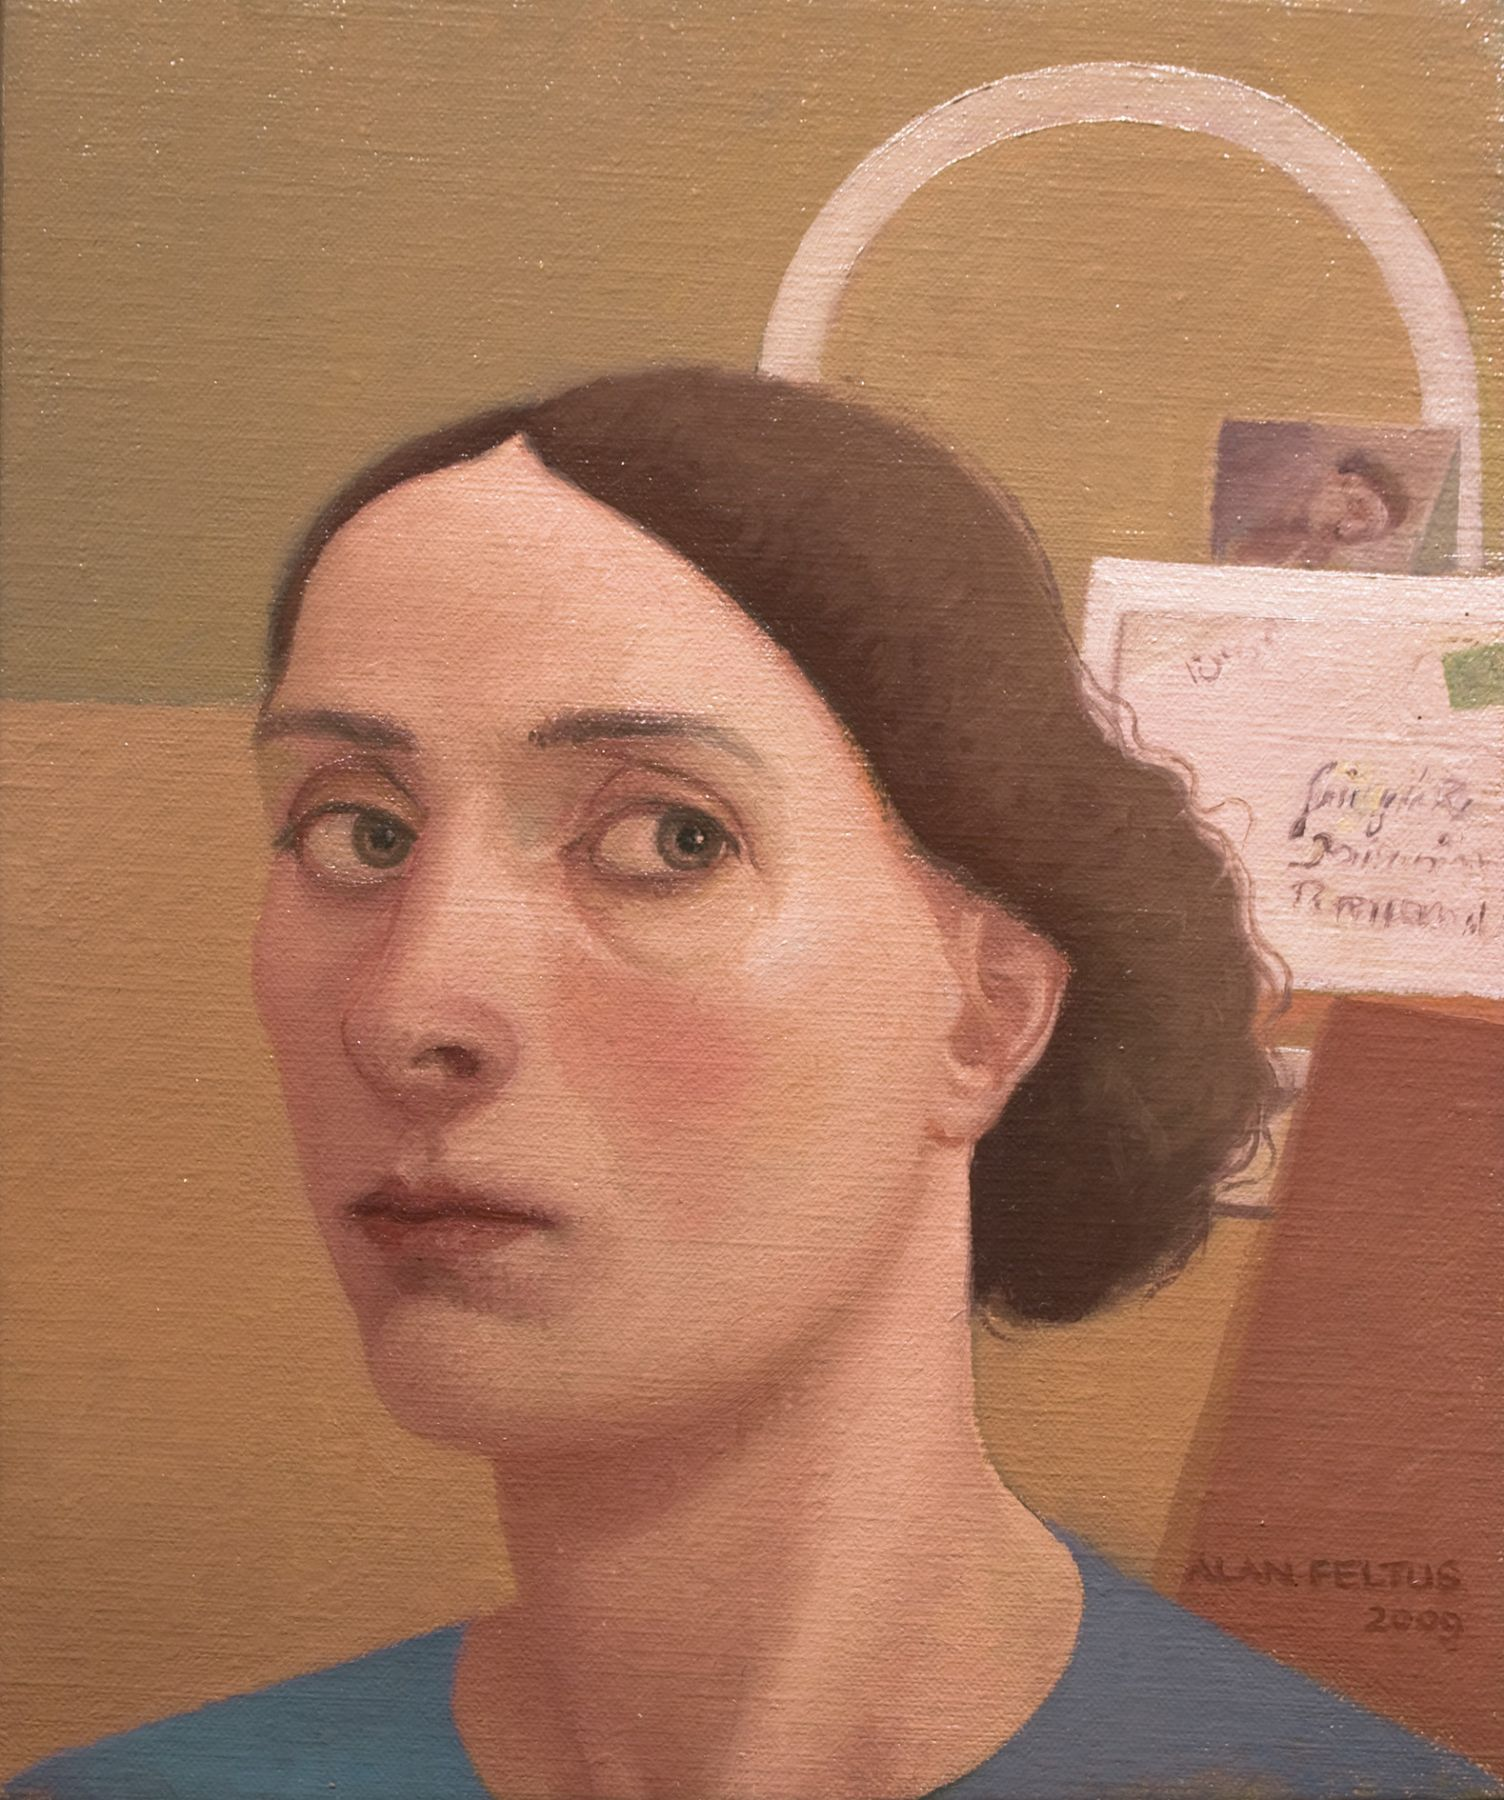 alan feltus, Alba, 2009, oil on canvas, 11 3/4 x 9 3/4 inches